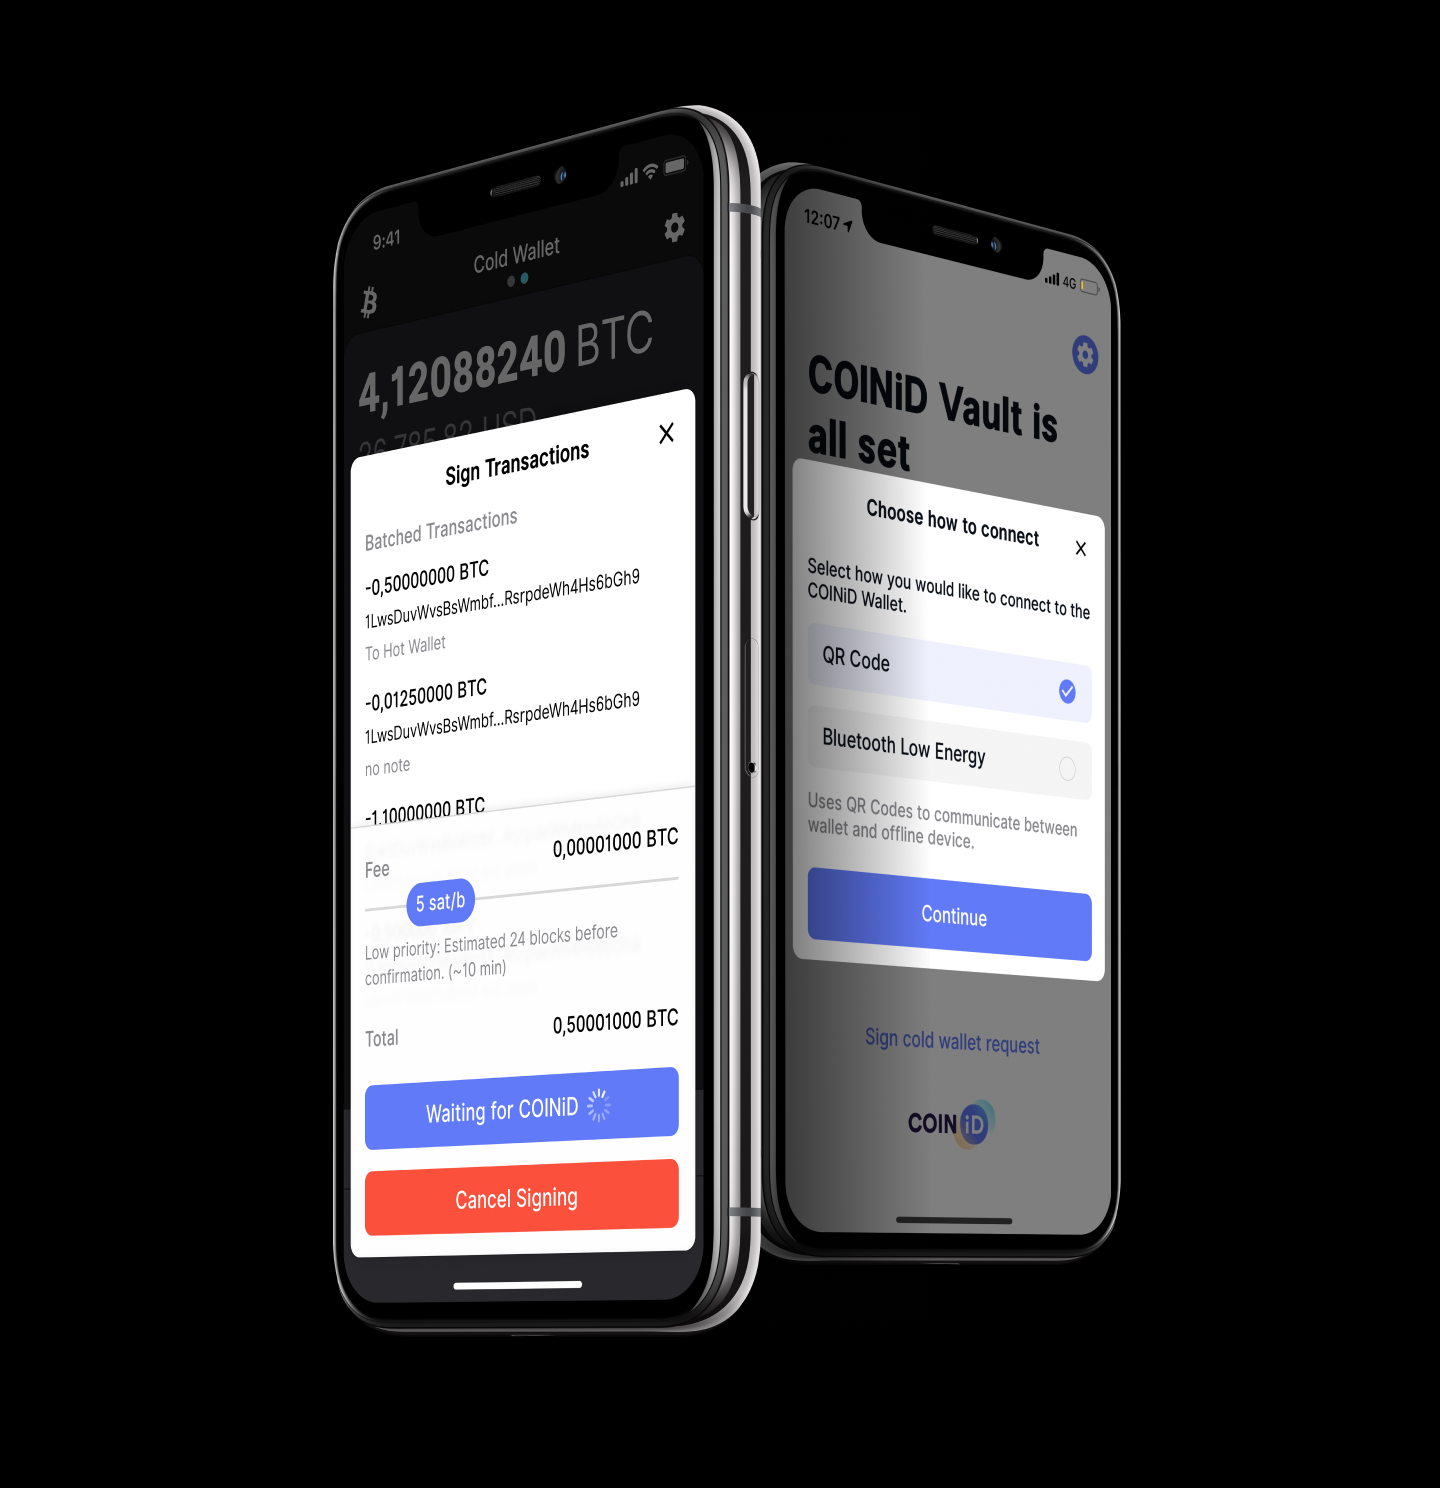 Download the COINiD Vault on a separate mobile device to create cold storage for your coins.